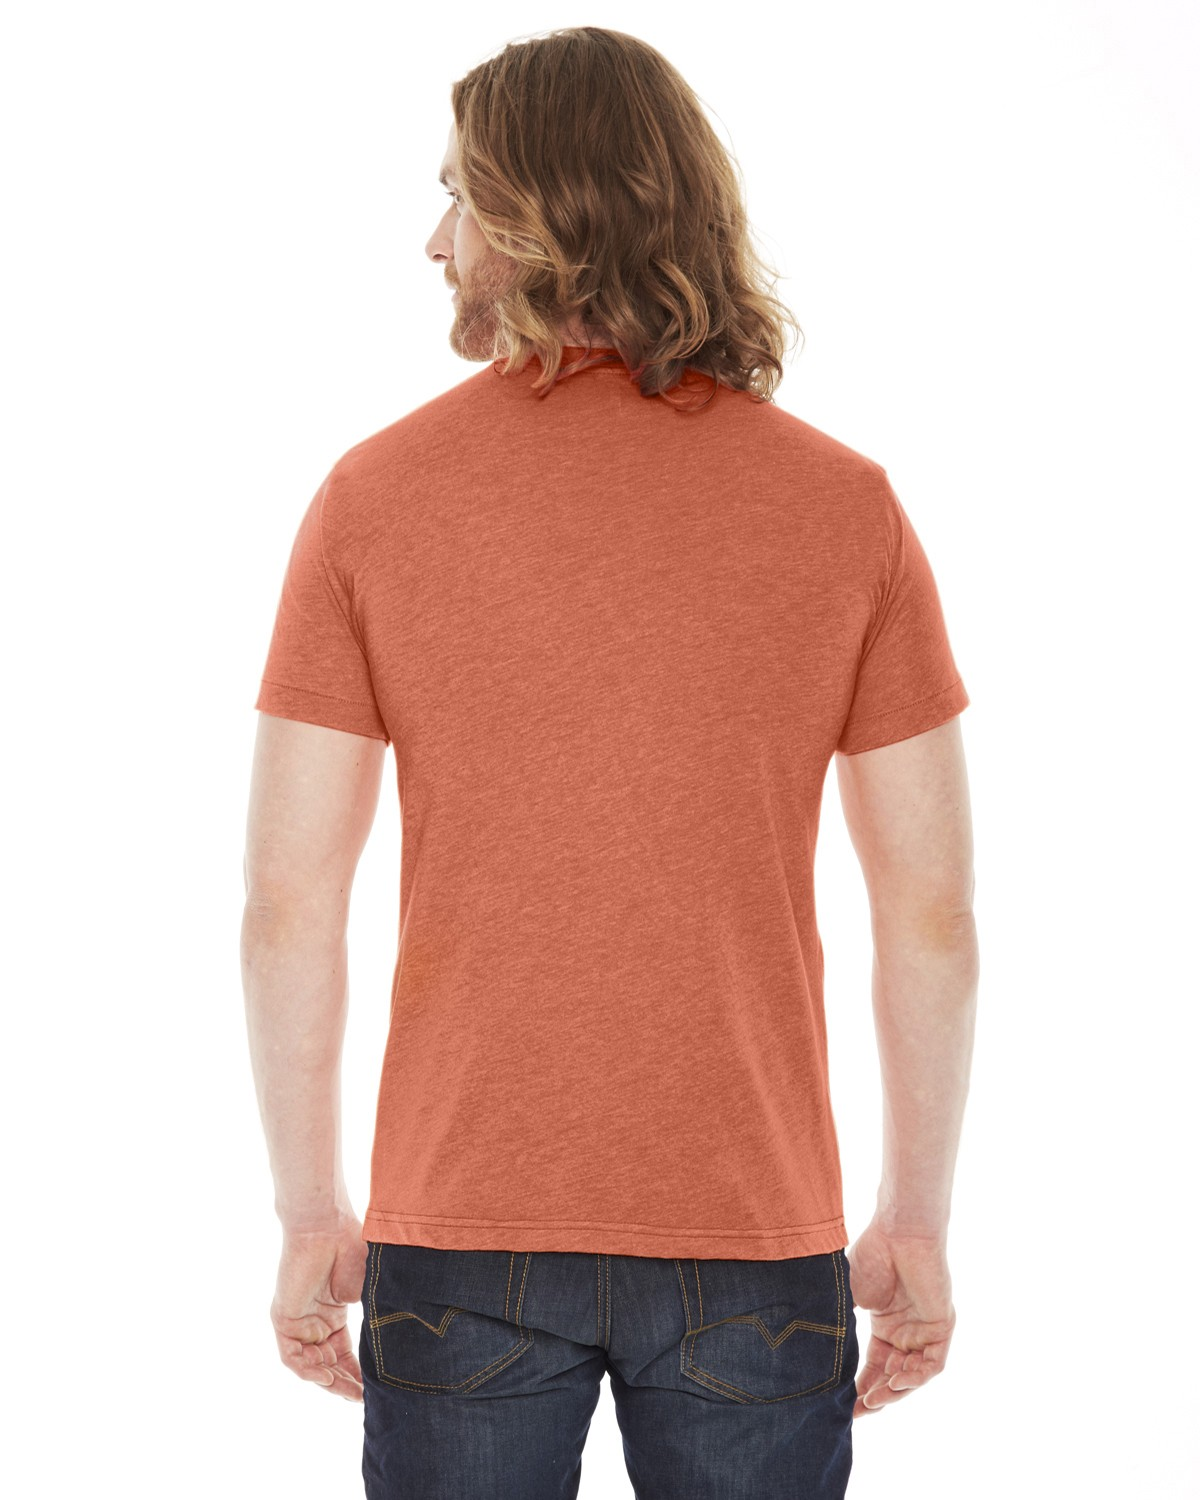 BB401W American Apparel HEATHER ORANGE